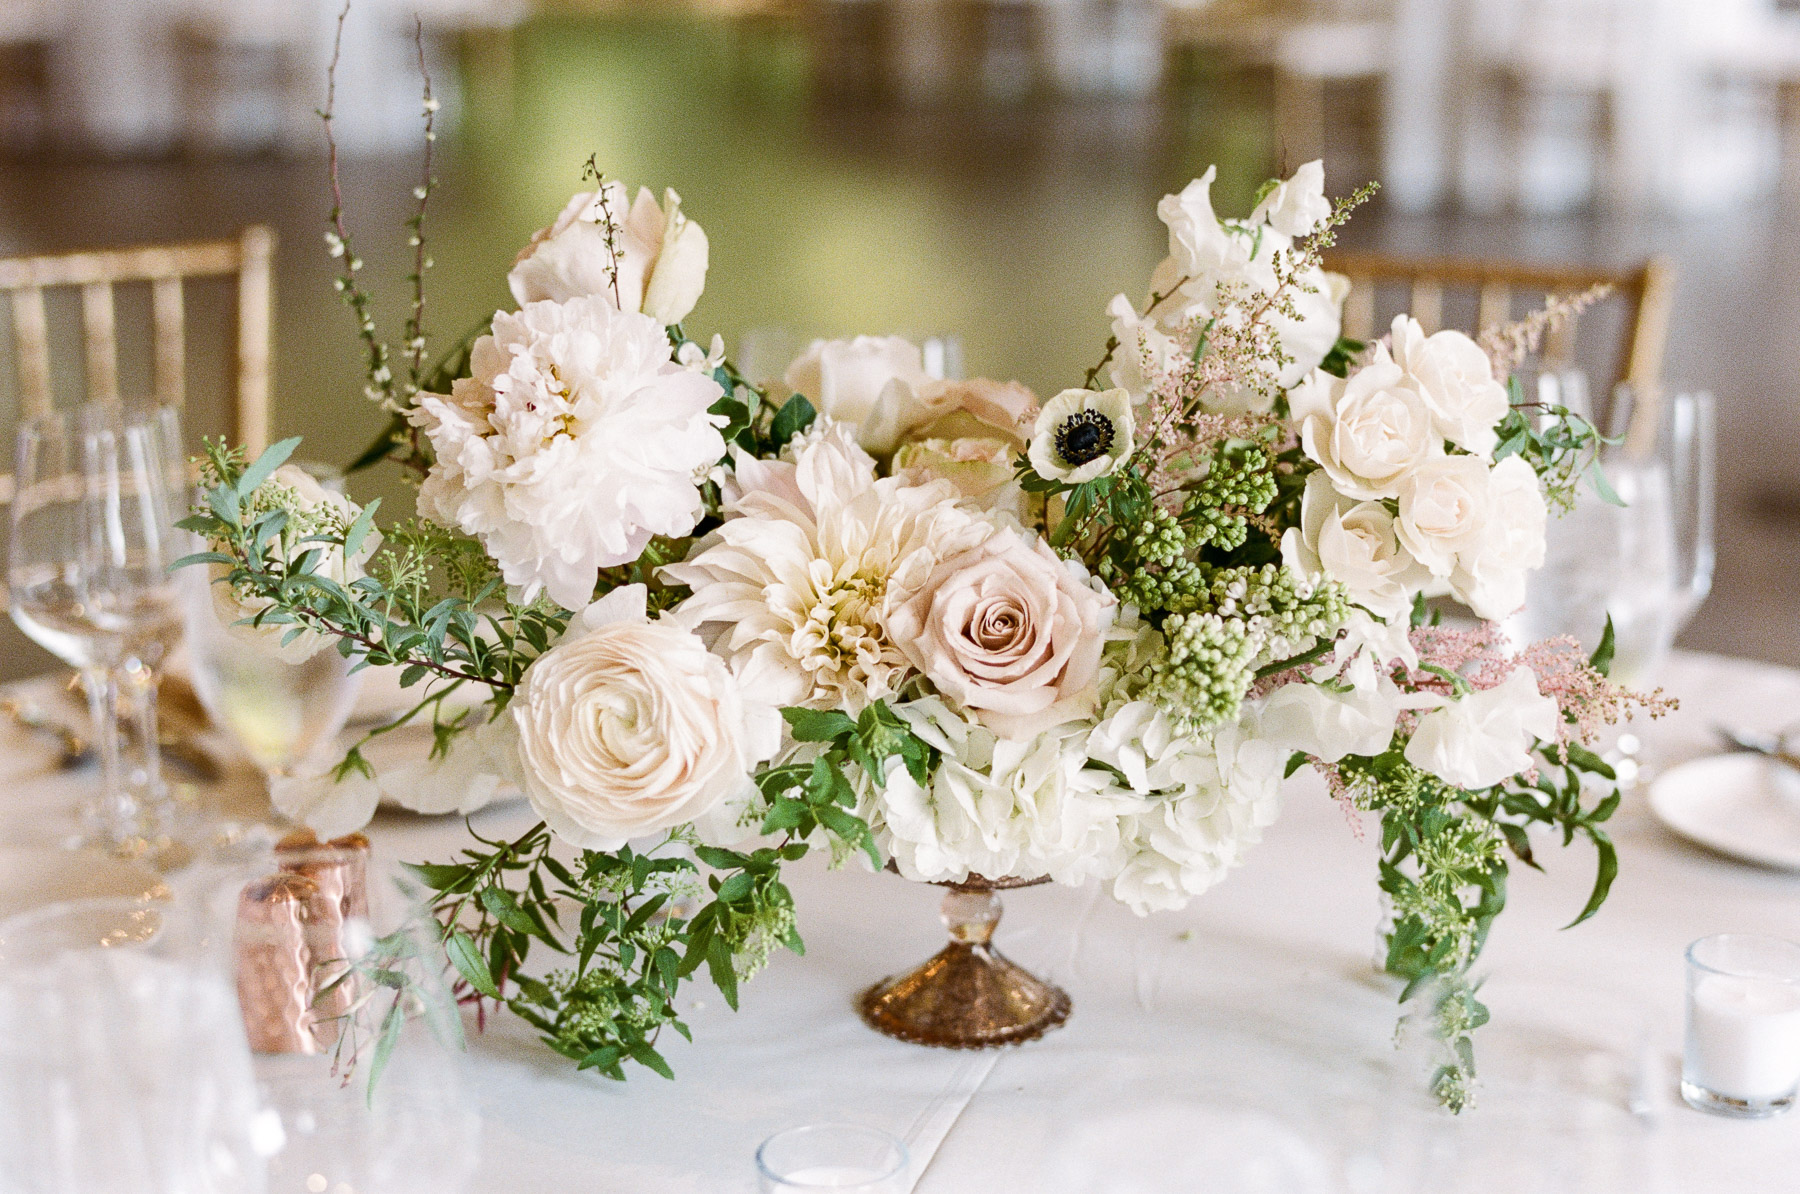 Blush pink, white and green centerpiece by Twisted Willow flowers